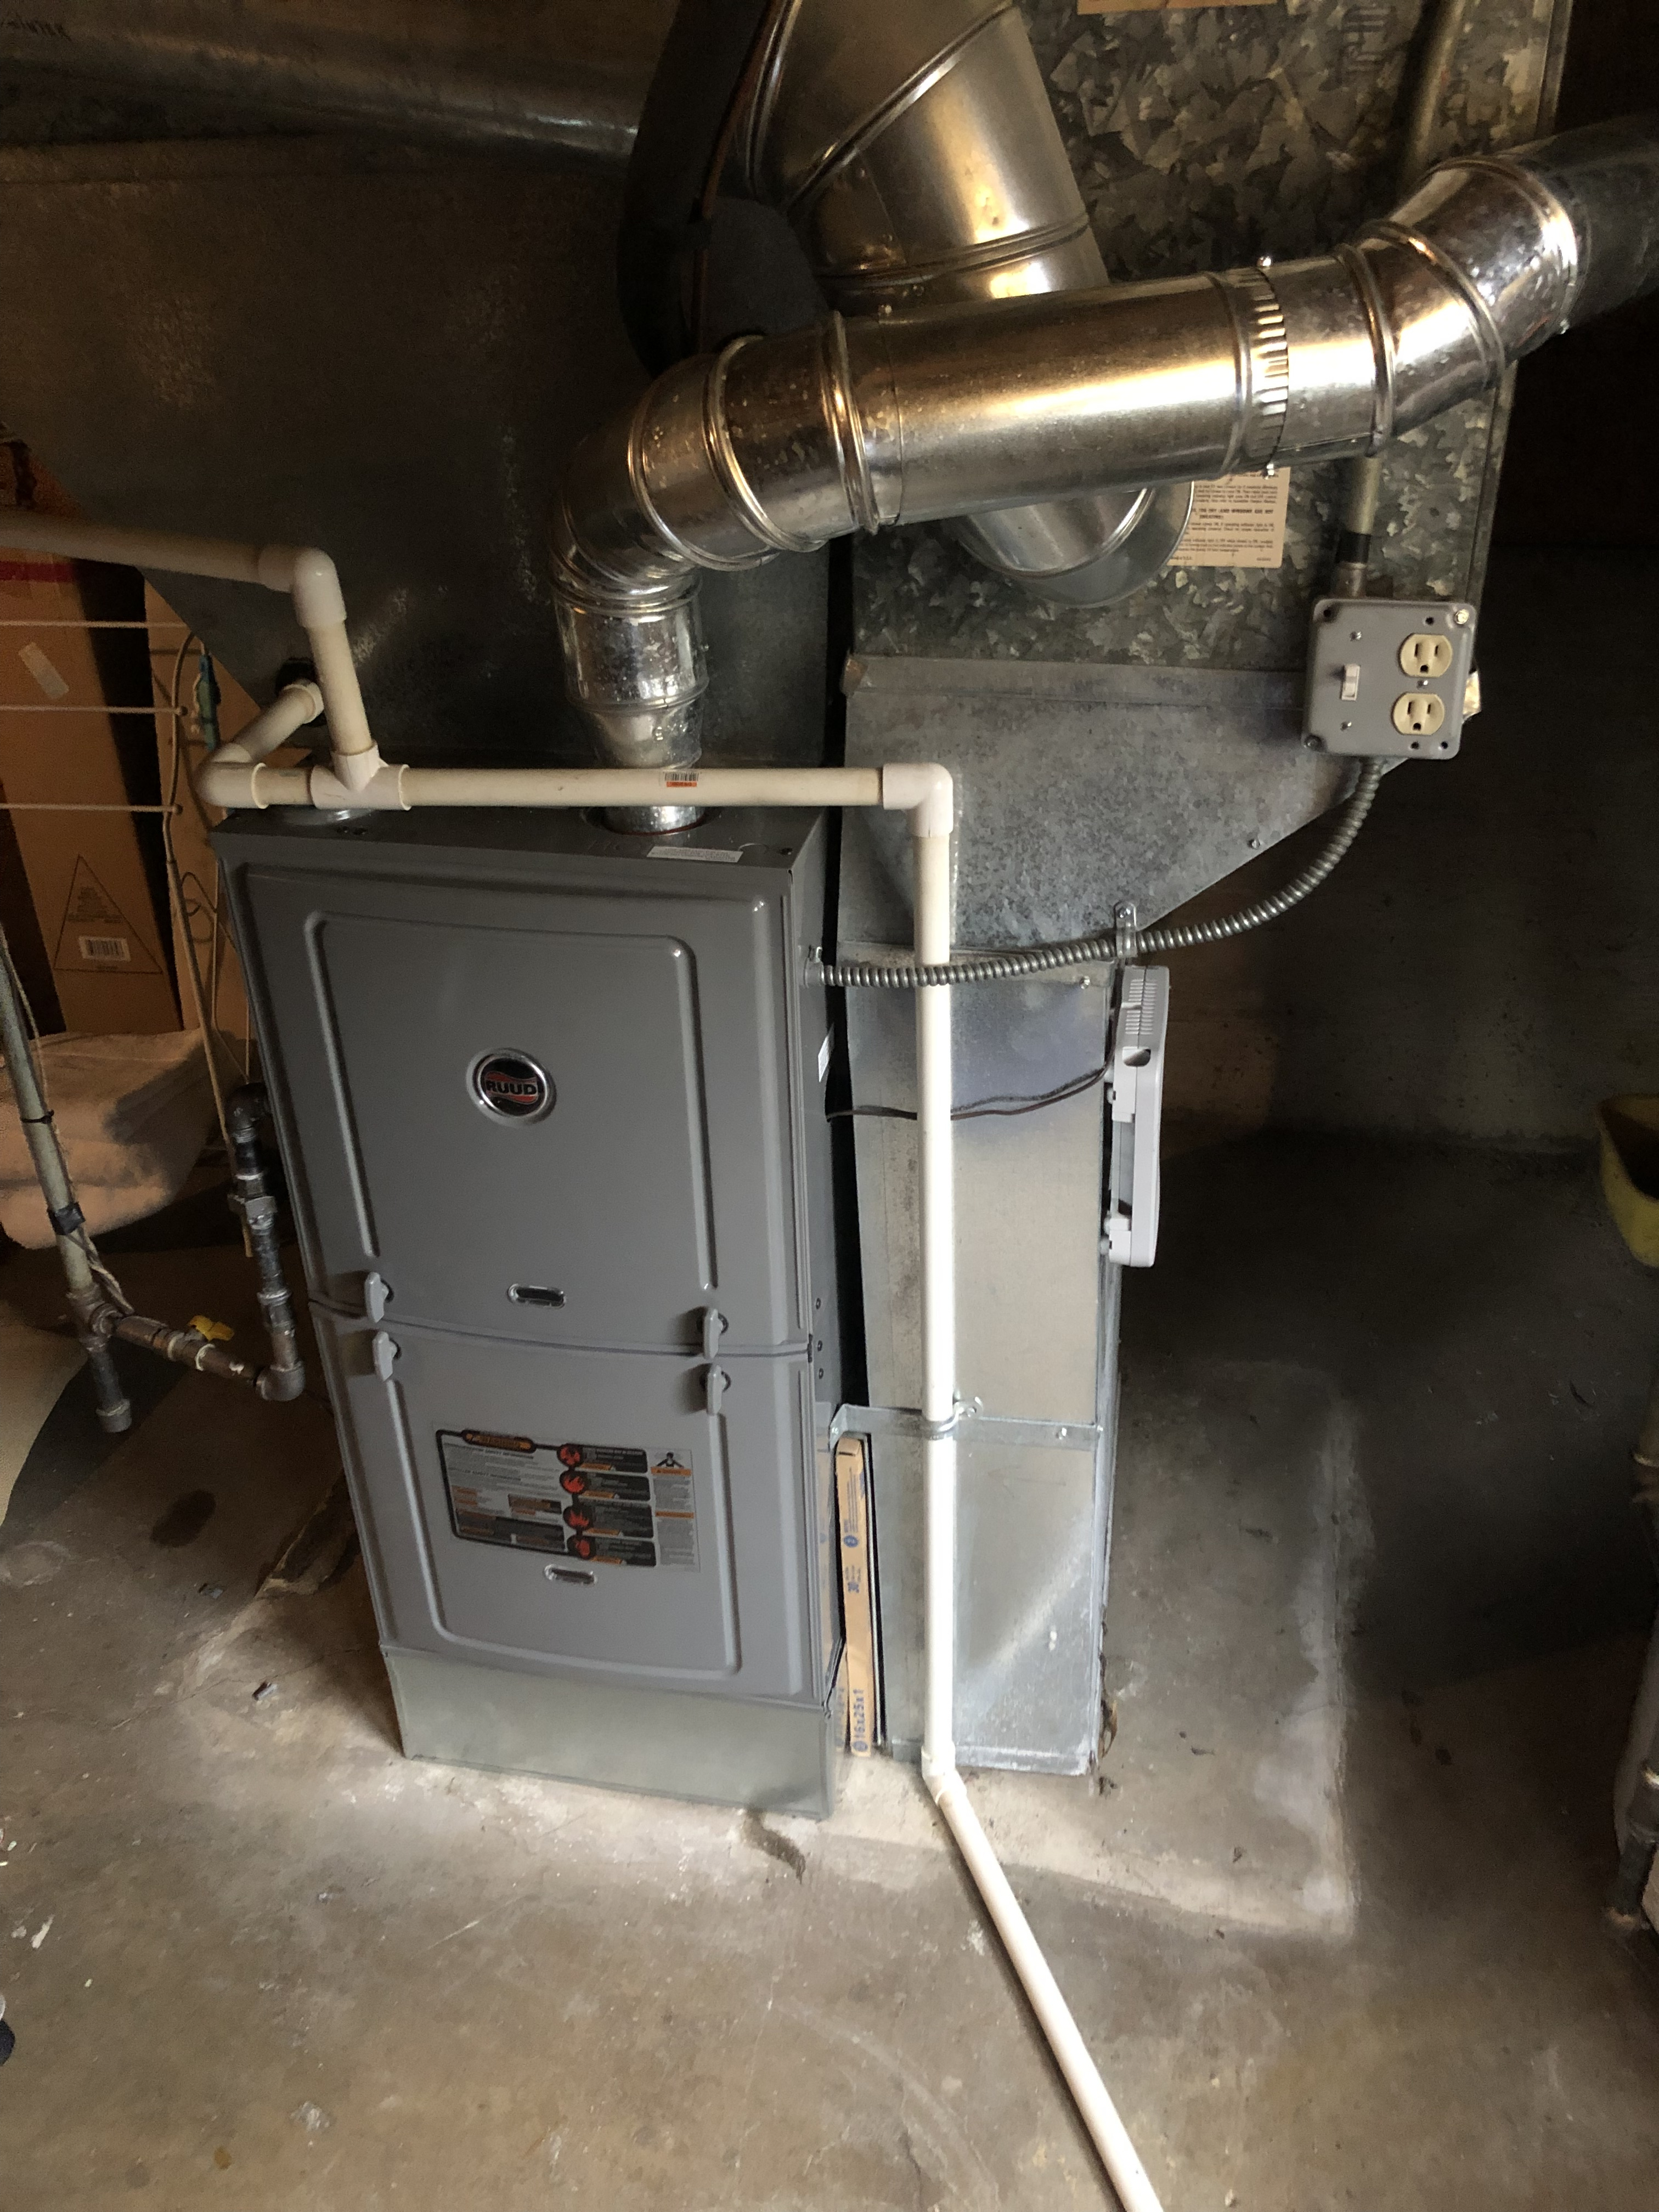 Arrived on call to a noise in the furnace. Check unit thoroughly check the blower wheel the motor and cycled unit thoroughly found noise coming from the return duct flexing when the blower would turn off so